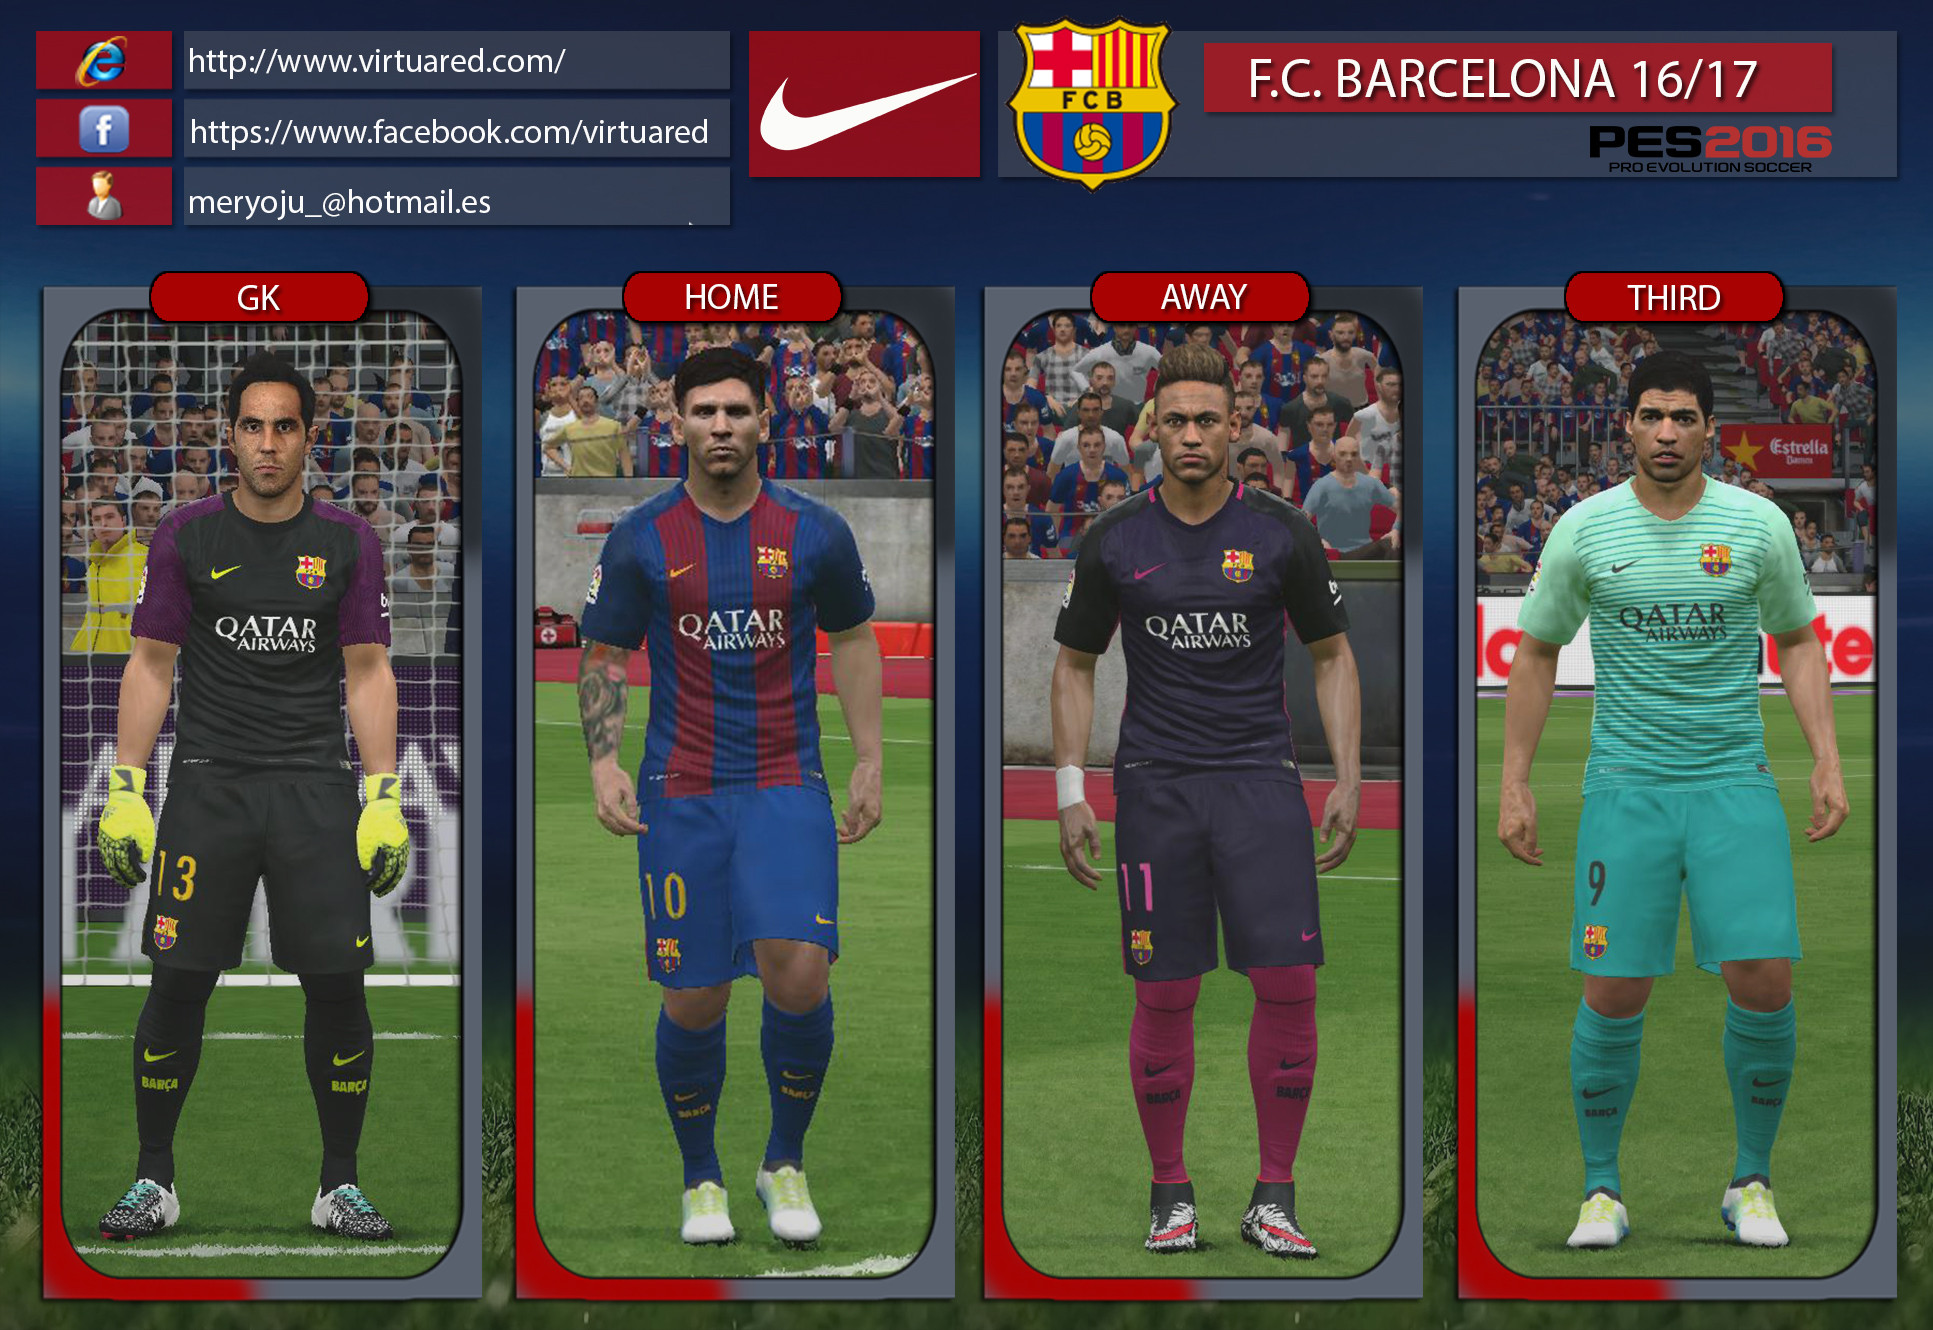 FC Barcelona 16/17 kits by Meryoju